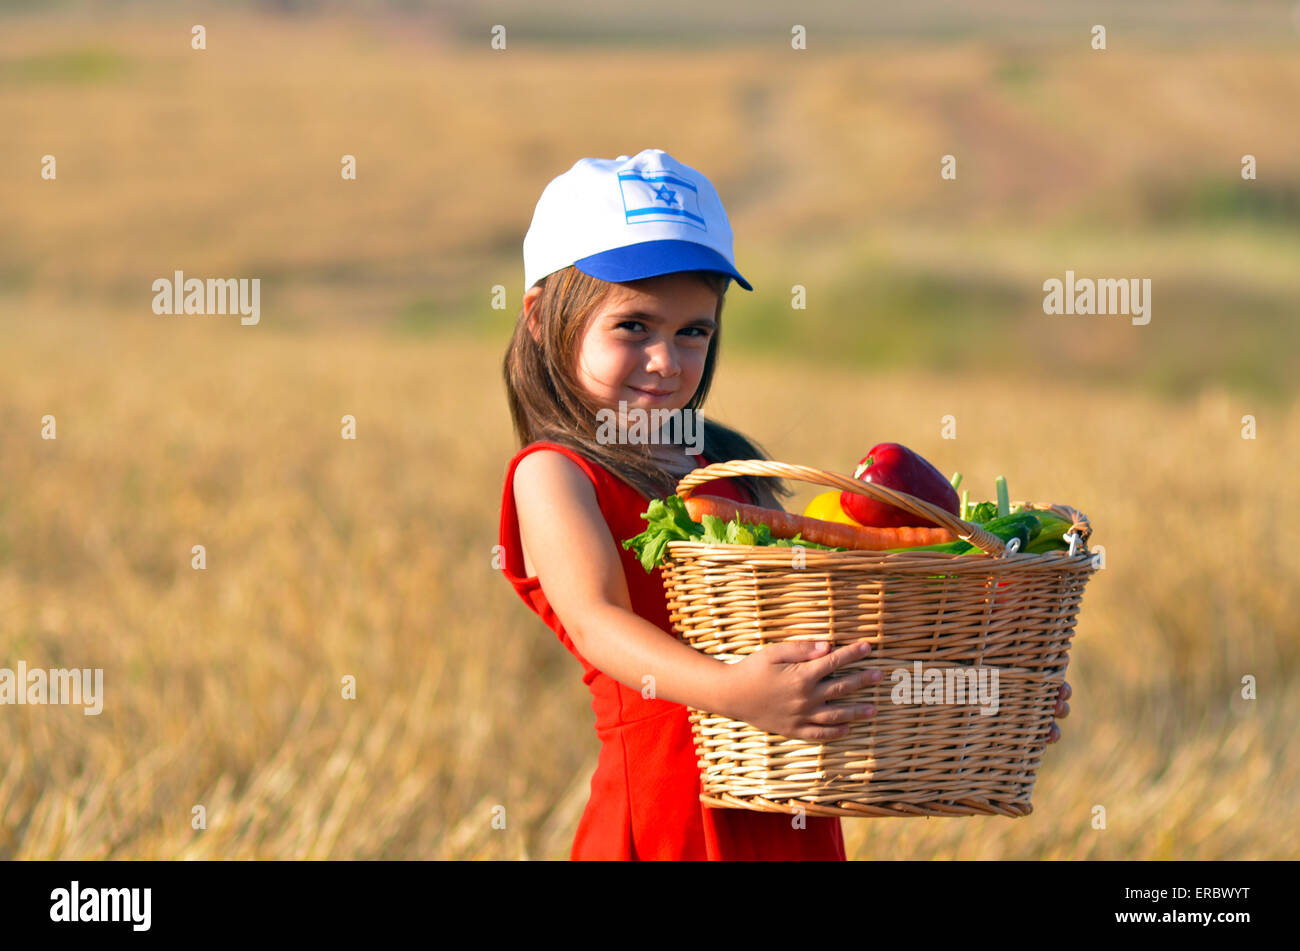 Little Jewish Israeli girl with basket of the first fruits during the Jewish holiday, Shavuot in Israel. - Stock Image